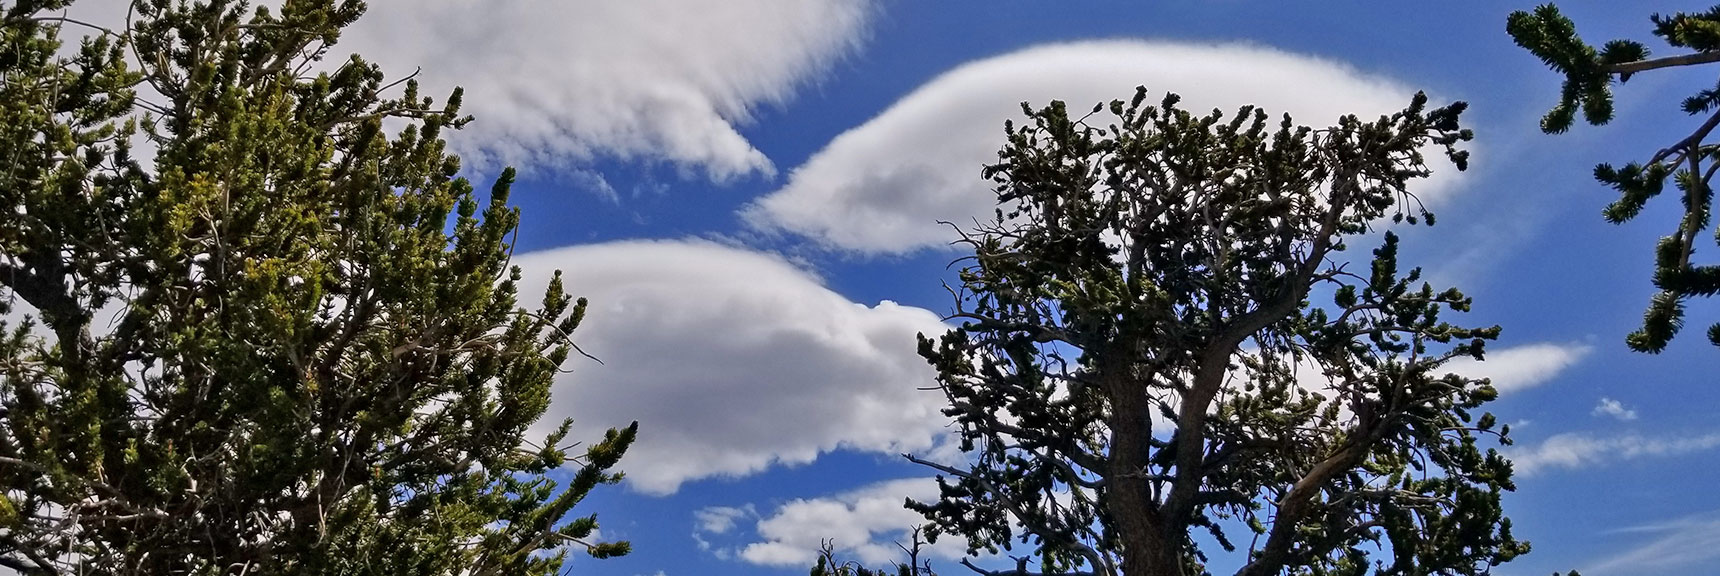 Clouds Floating Above the Bristlecone Pine Forest of Mummy's Knees | Mummy Mountain's Knees | Mt. Charleston Wilderness, Nevada 030